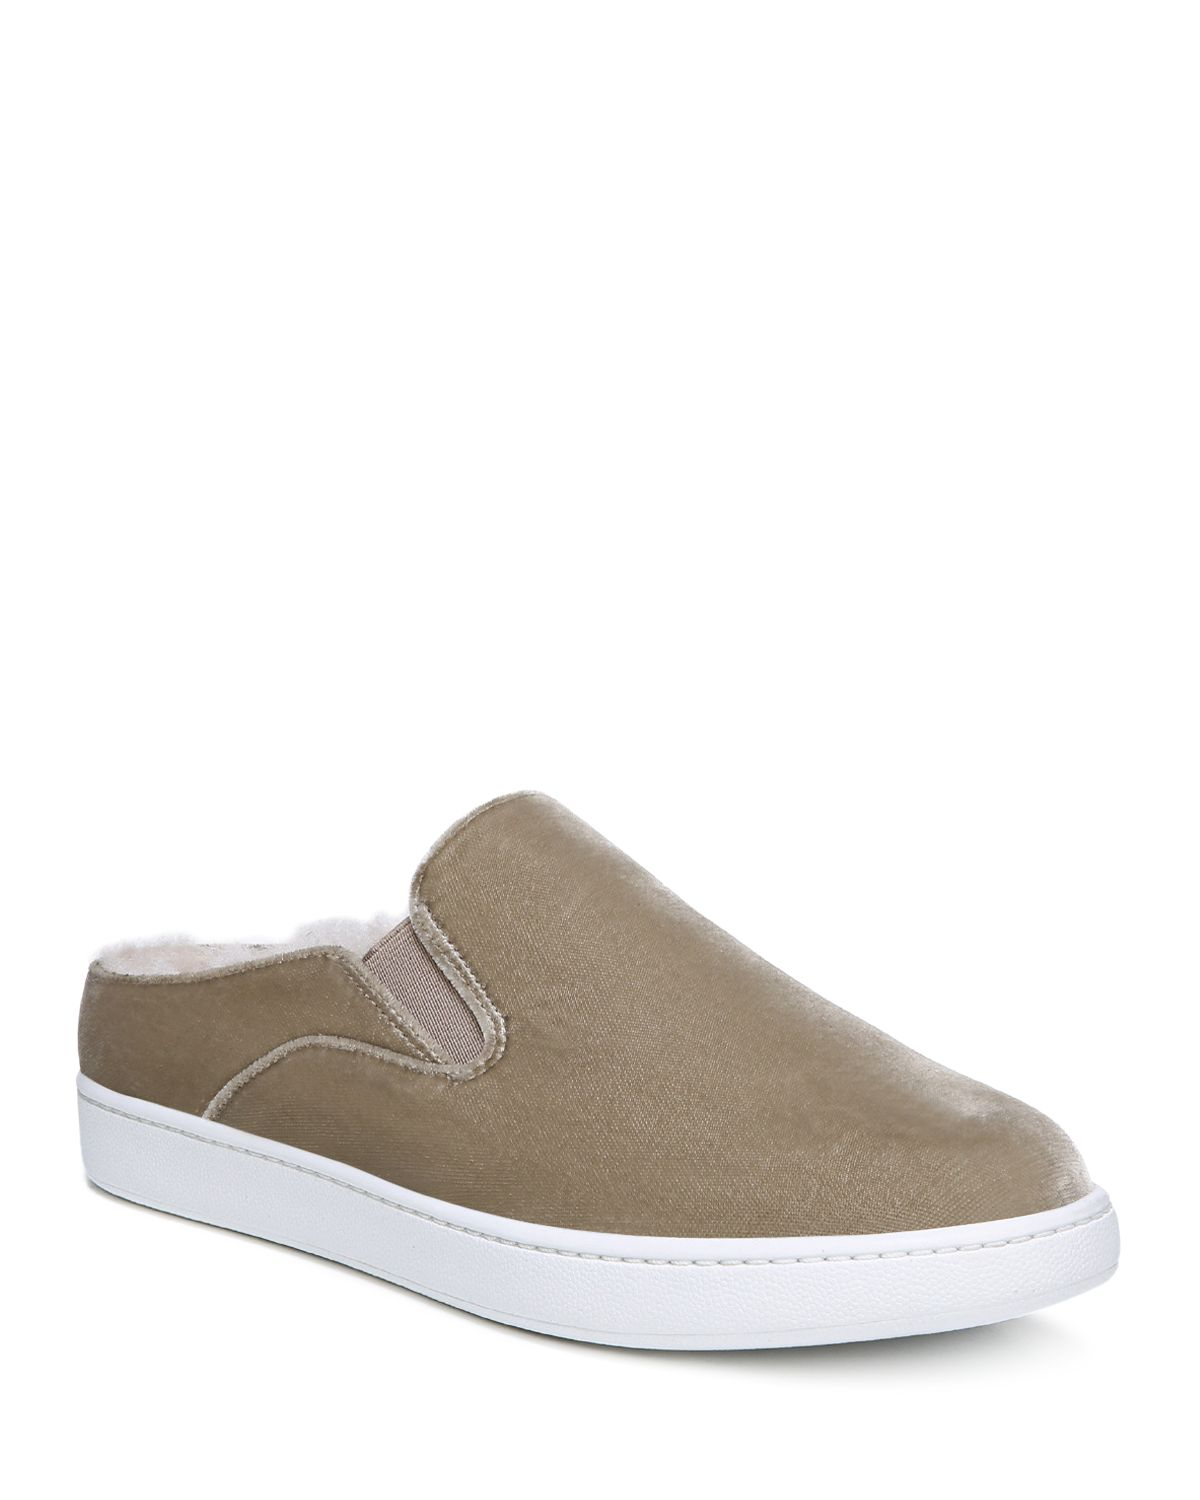 Vince Verrell Velvet and Shearling Sneaker Mule - 100% Exclusive